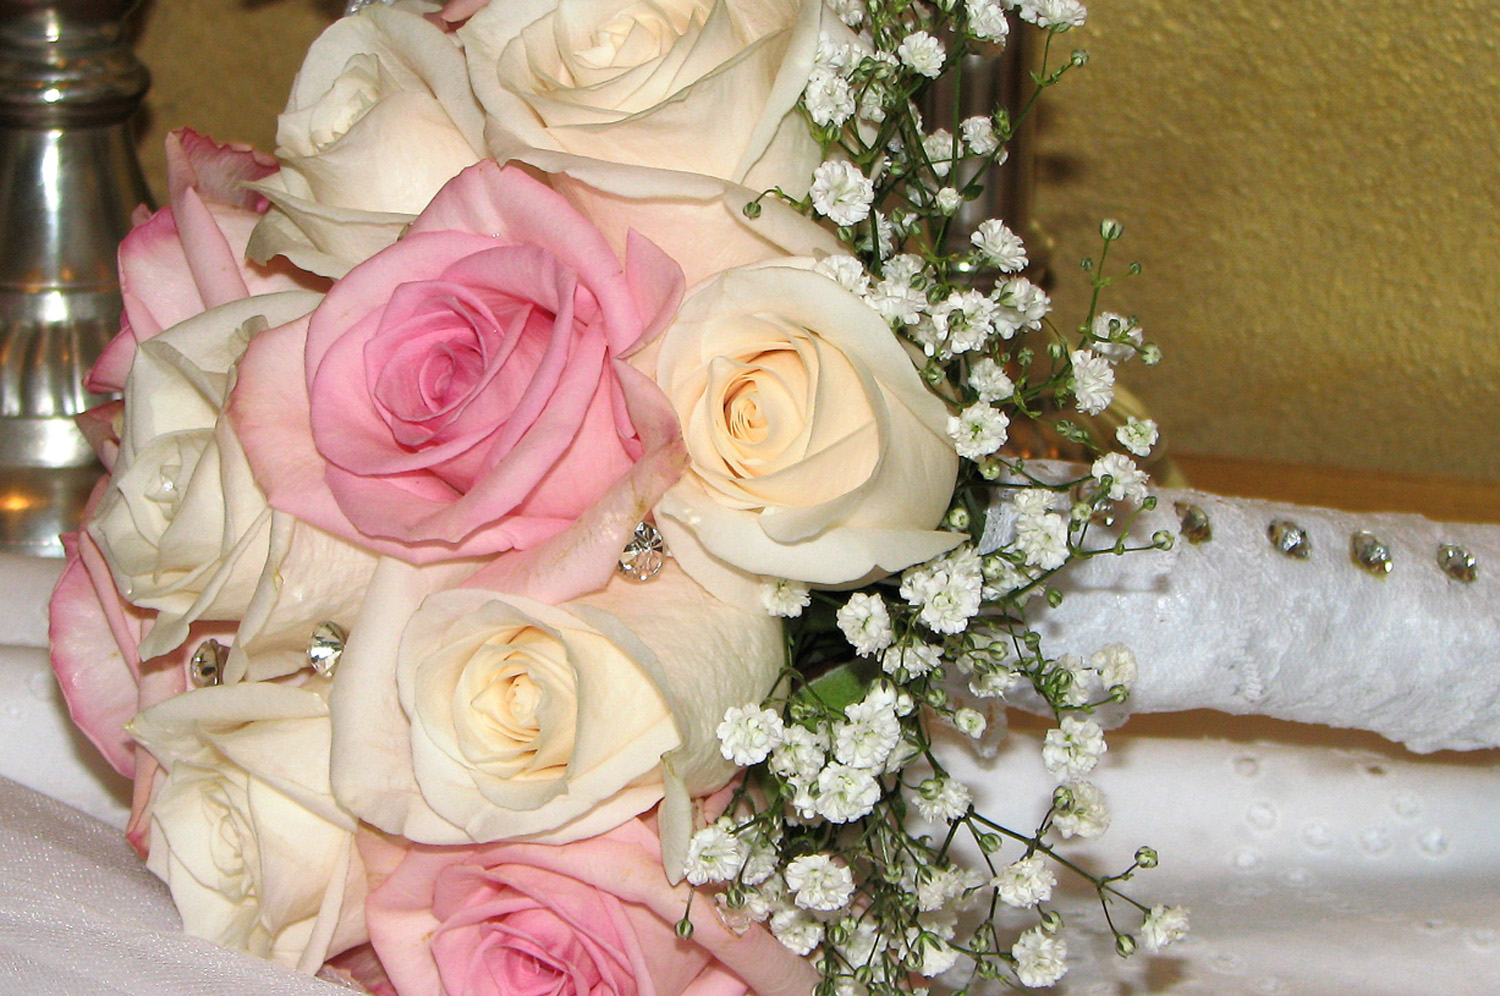 Wedding Bouquets 4-Middlefield Ohio-Flowers by Emily.JPG